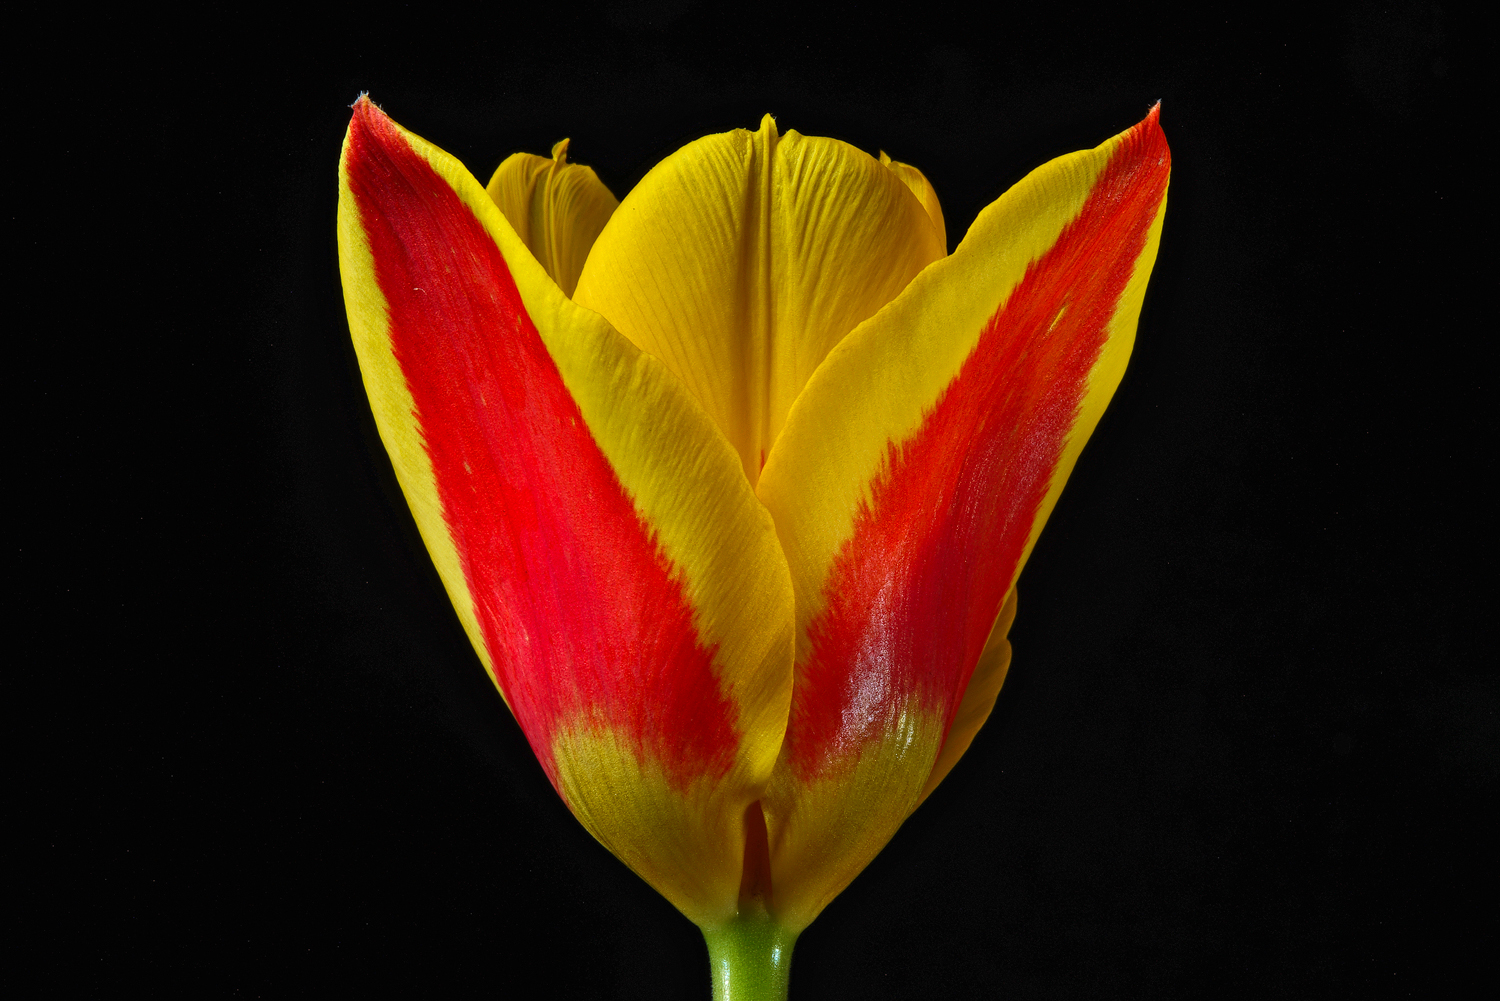 tulip dsc aw author sava gregory and verena